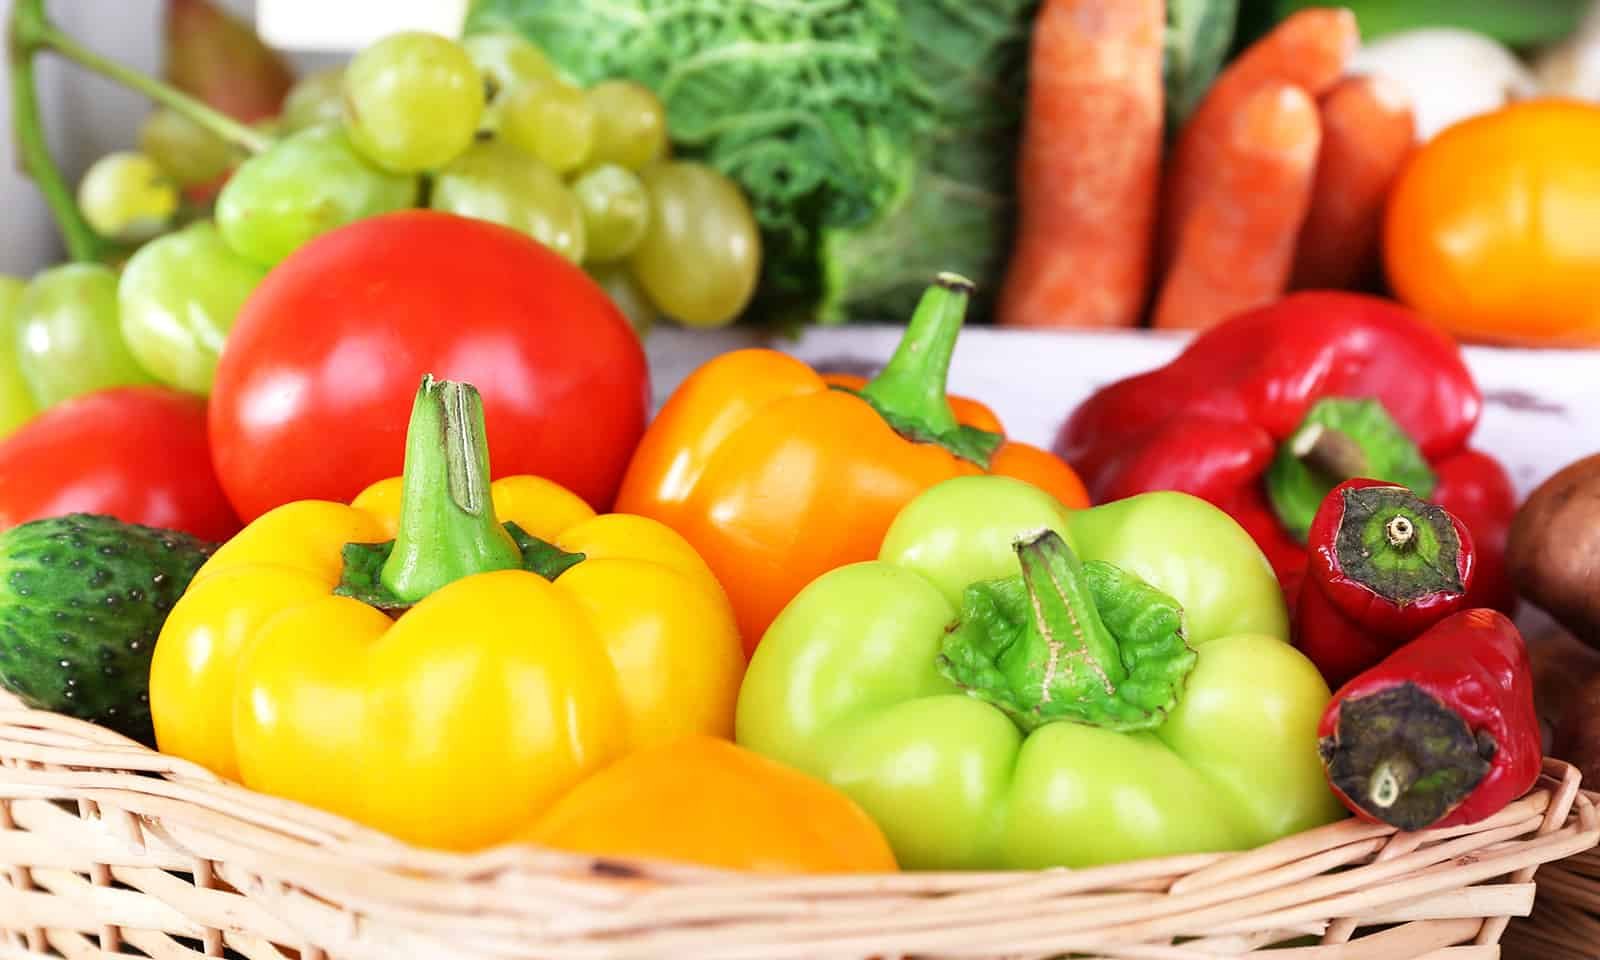 The-Best-and-Worst-Food-for-Acne-Prone-Skin-colorful-fuits-and-veggies